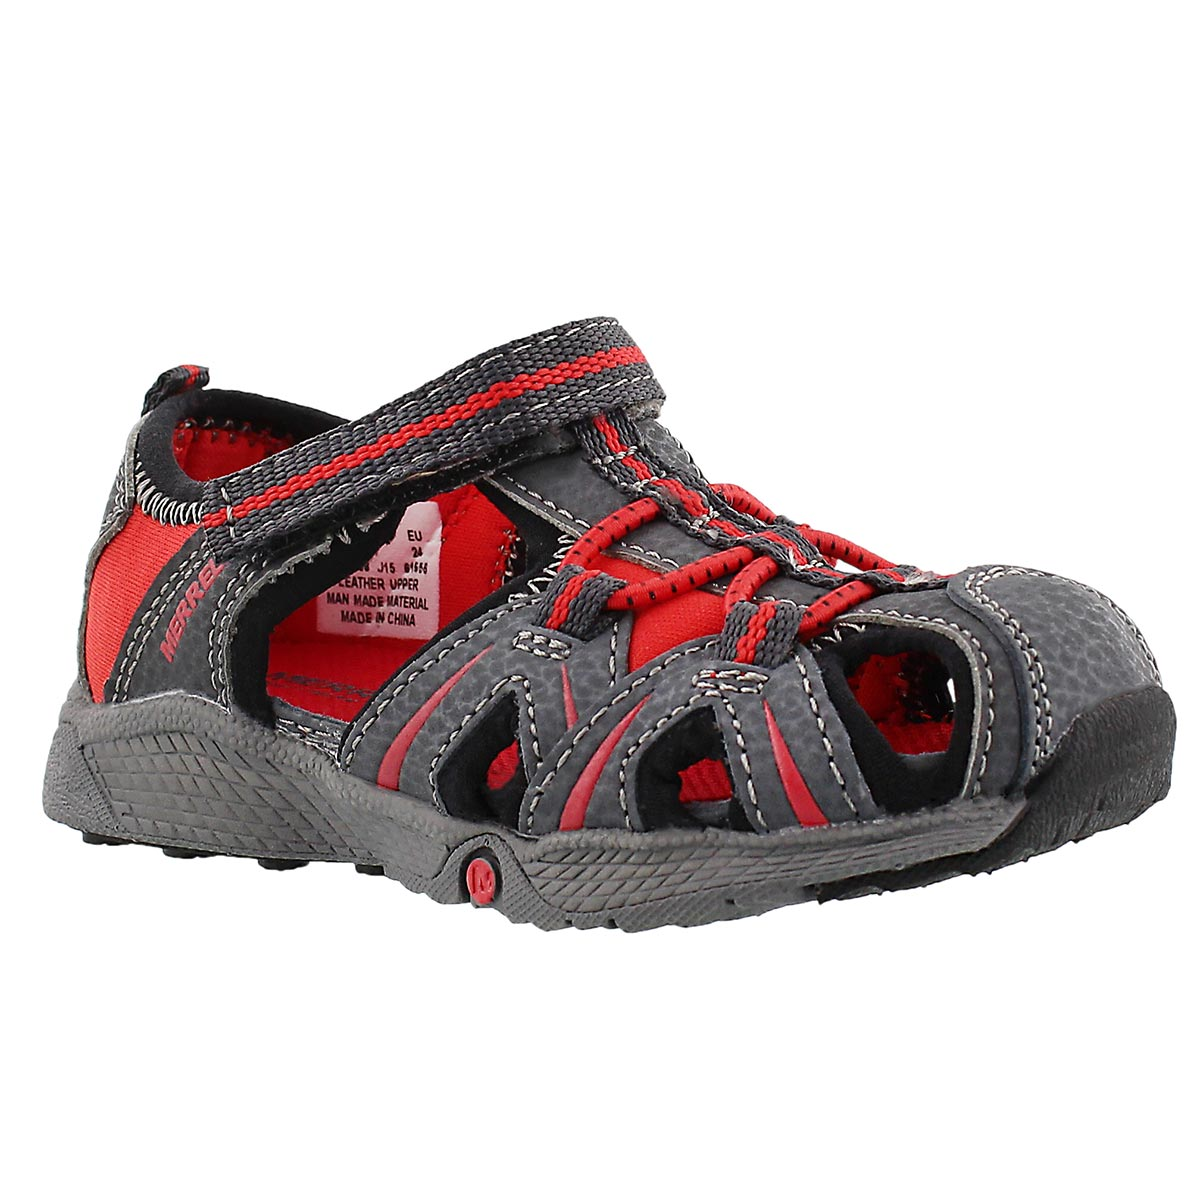 Infants' HYDRO JUNIOR grey/red fisherman sandals